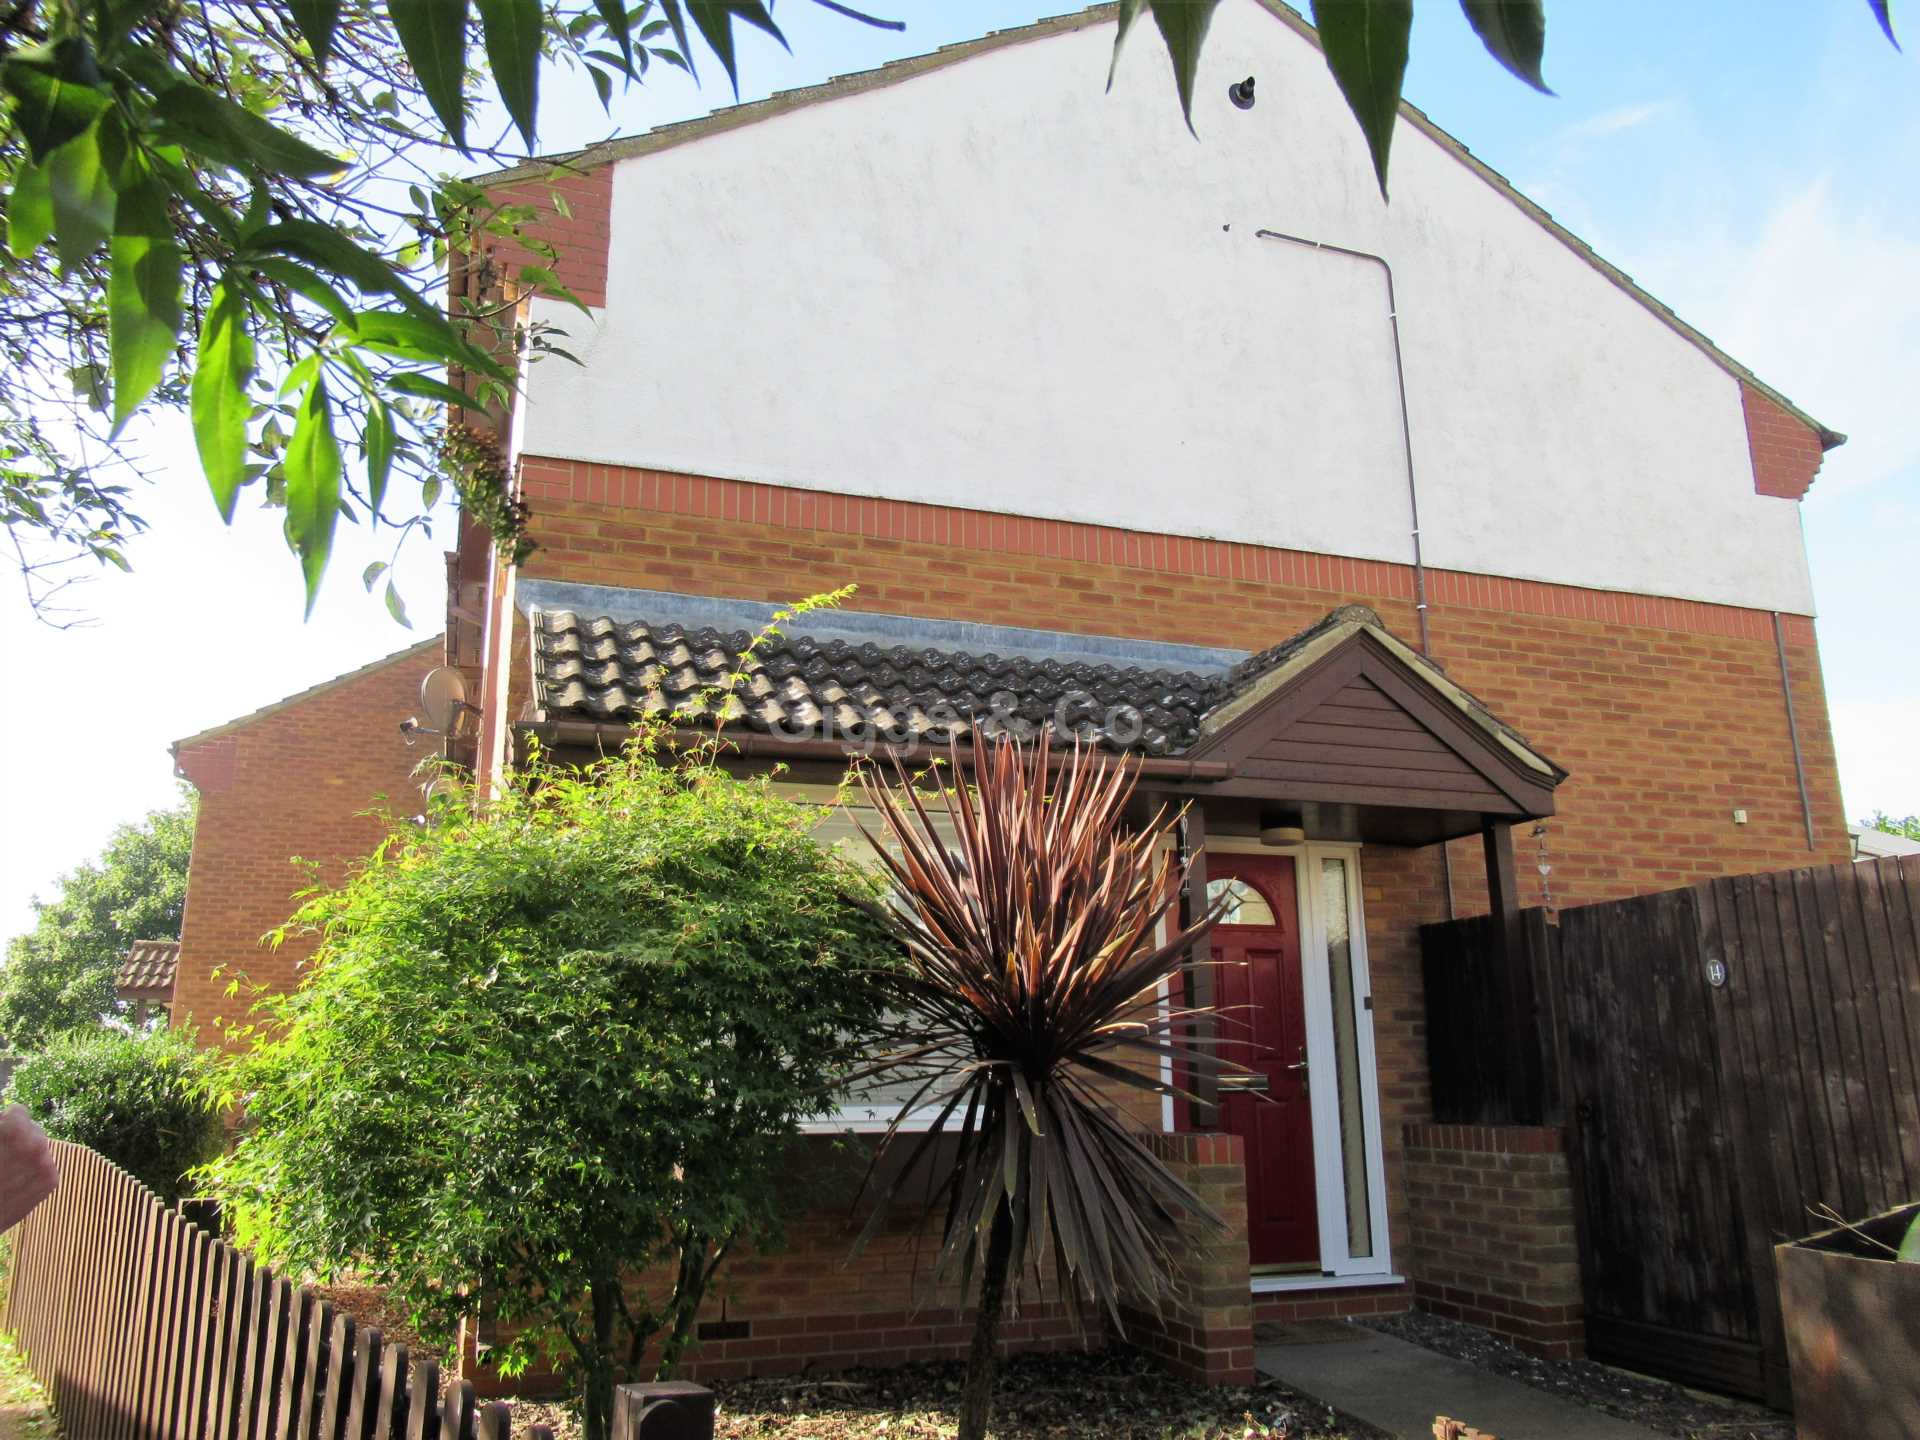 3 bed end-of-terrace-house to rent in Eayre Court, St Neots, PE19